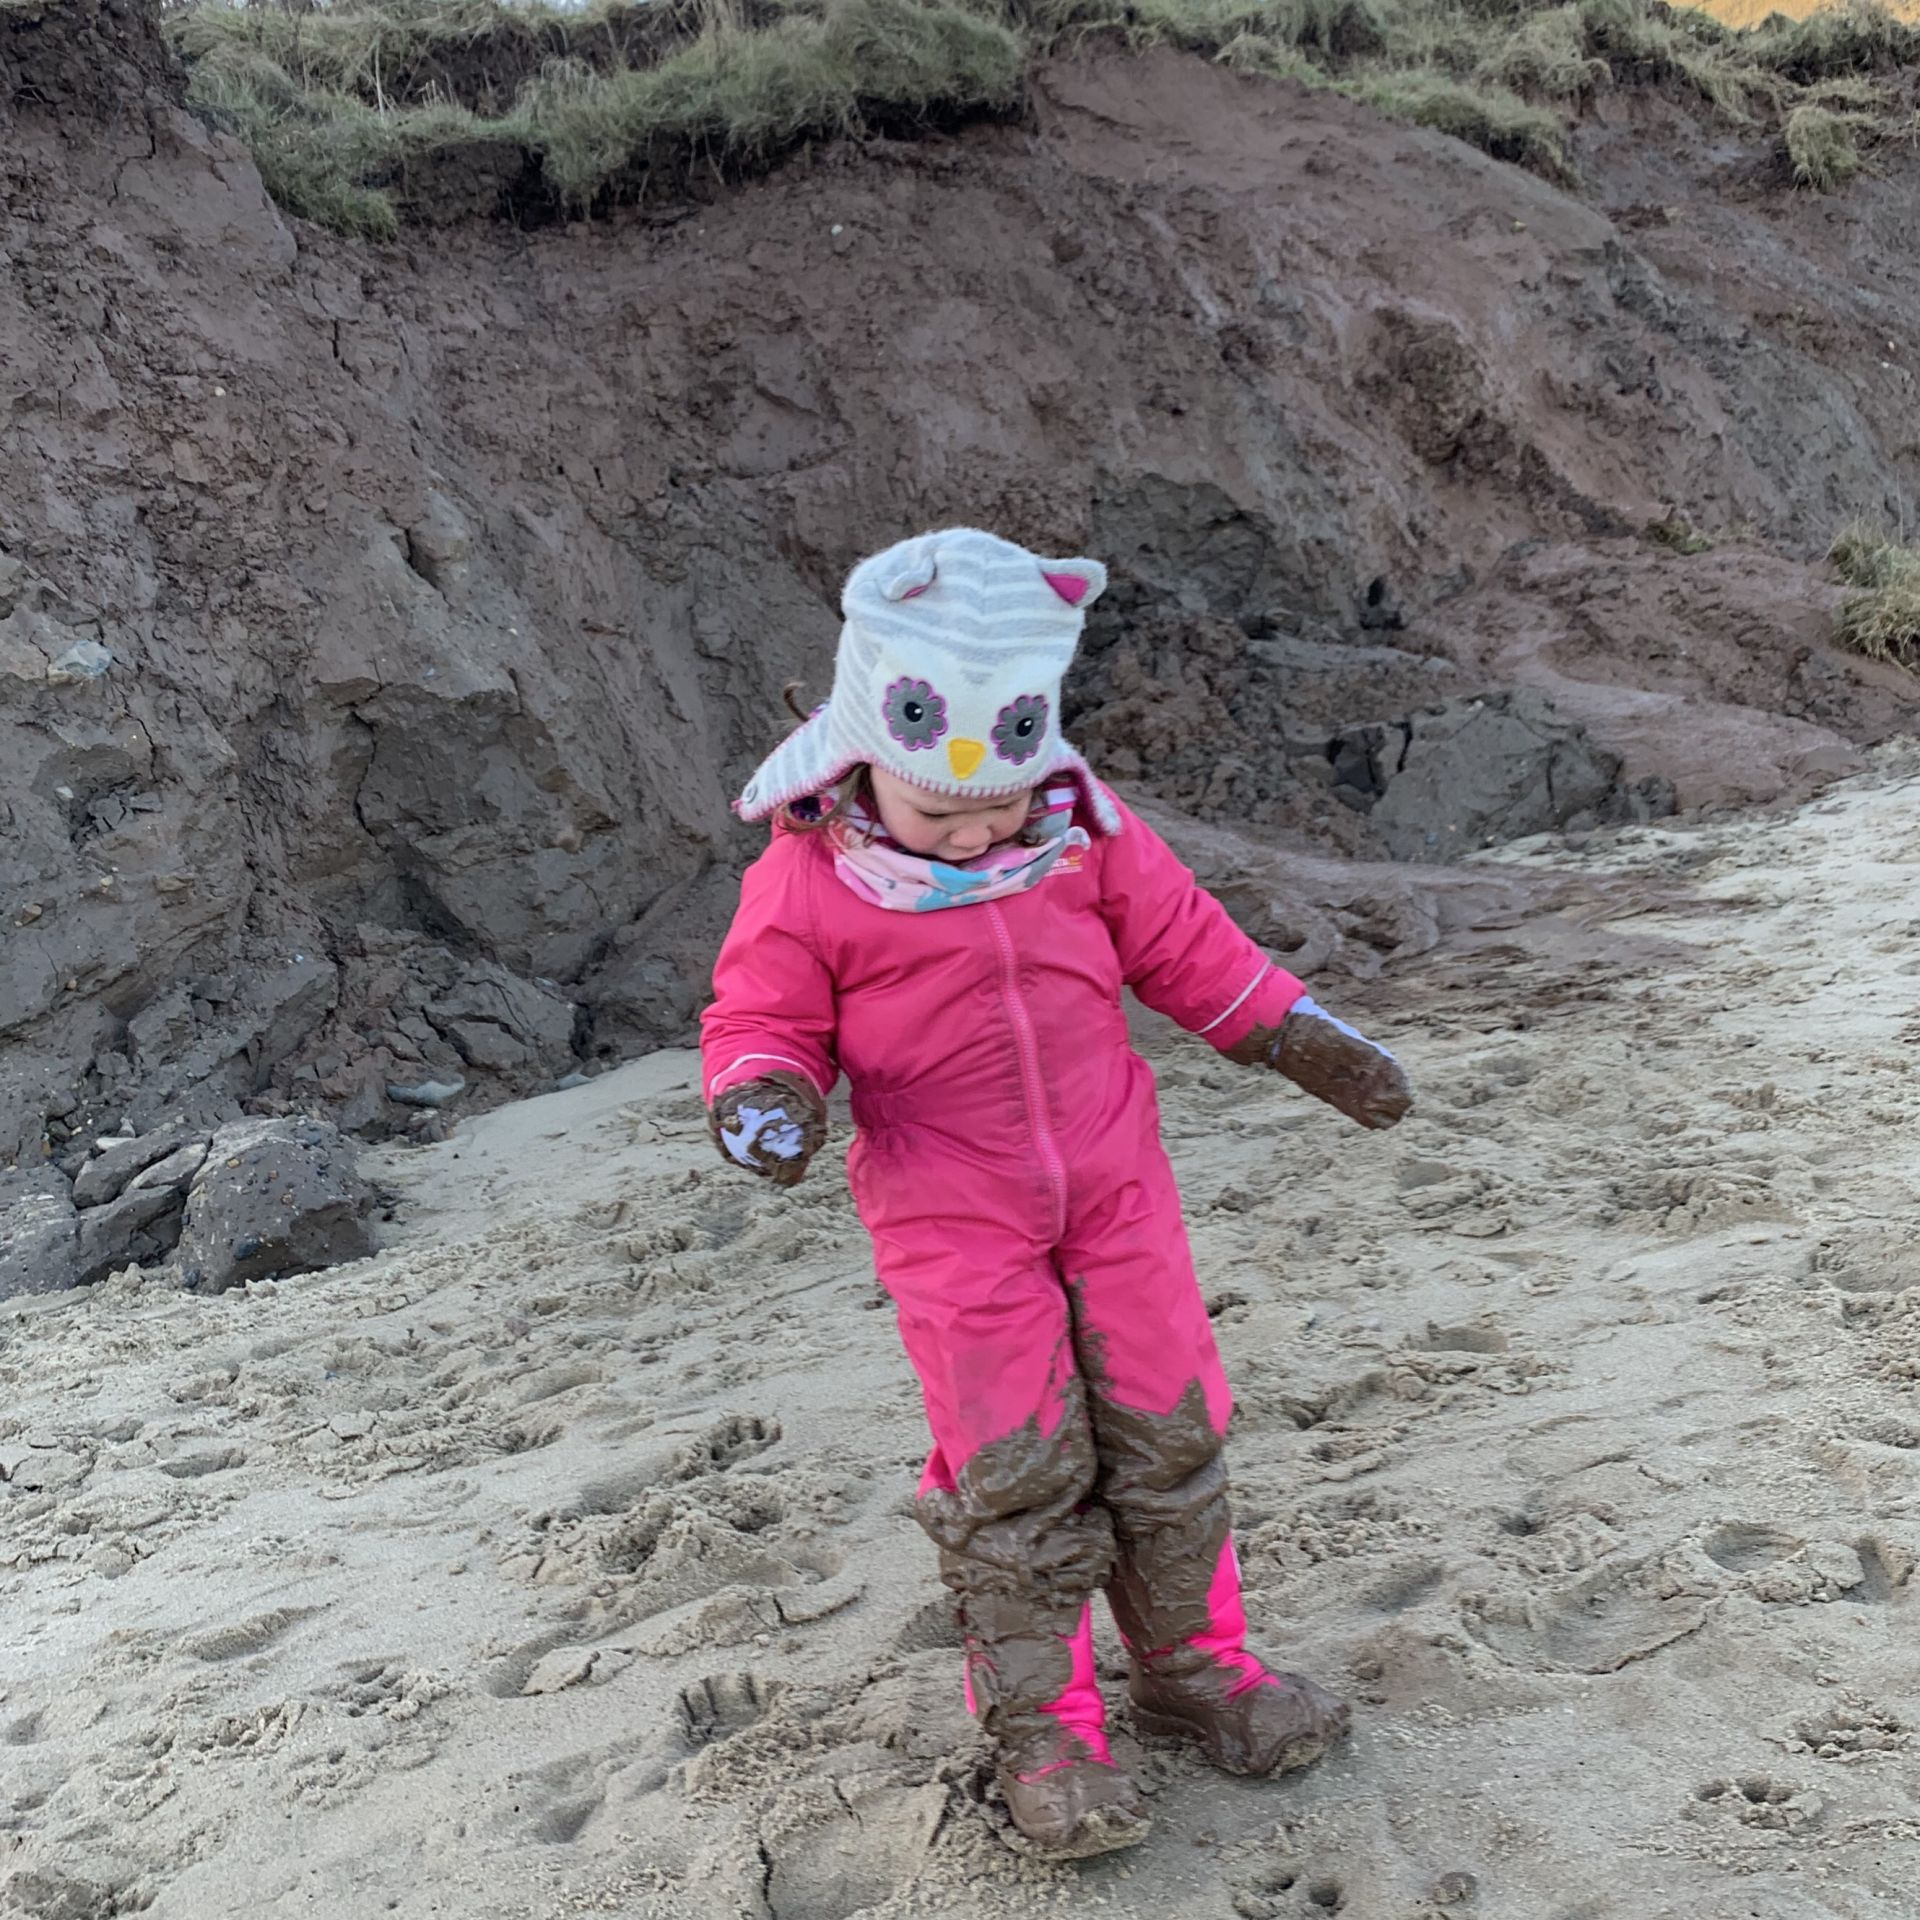 Last living arrows with a girl covered in sand